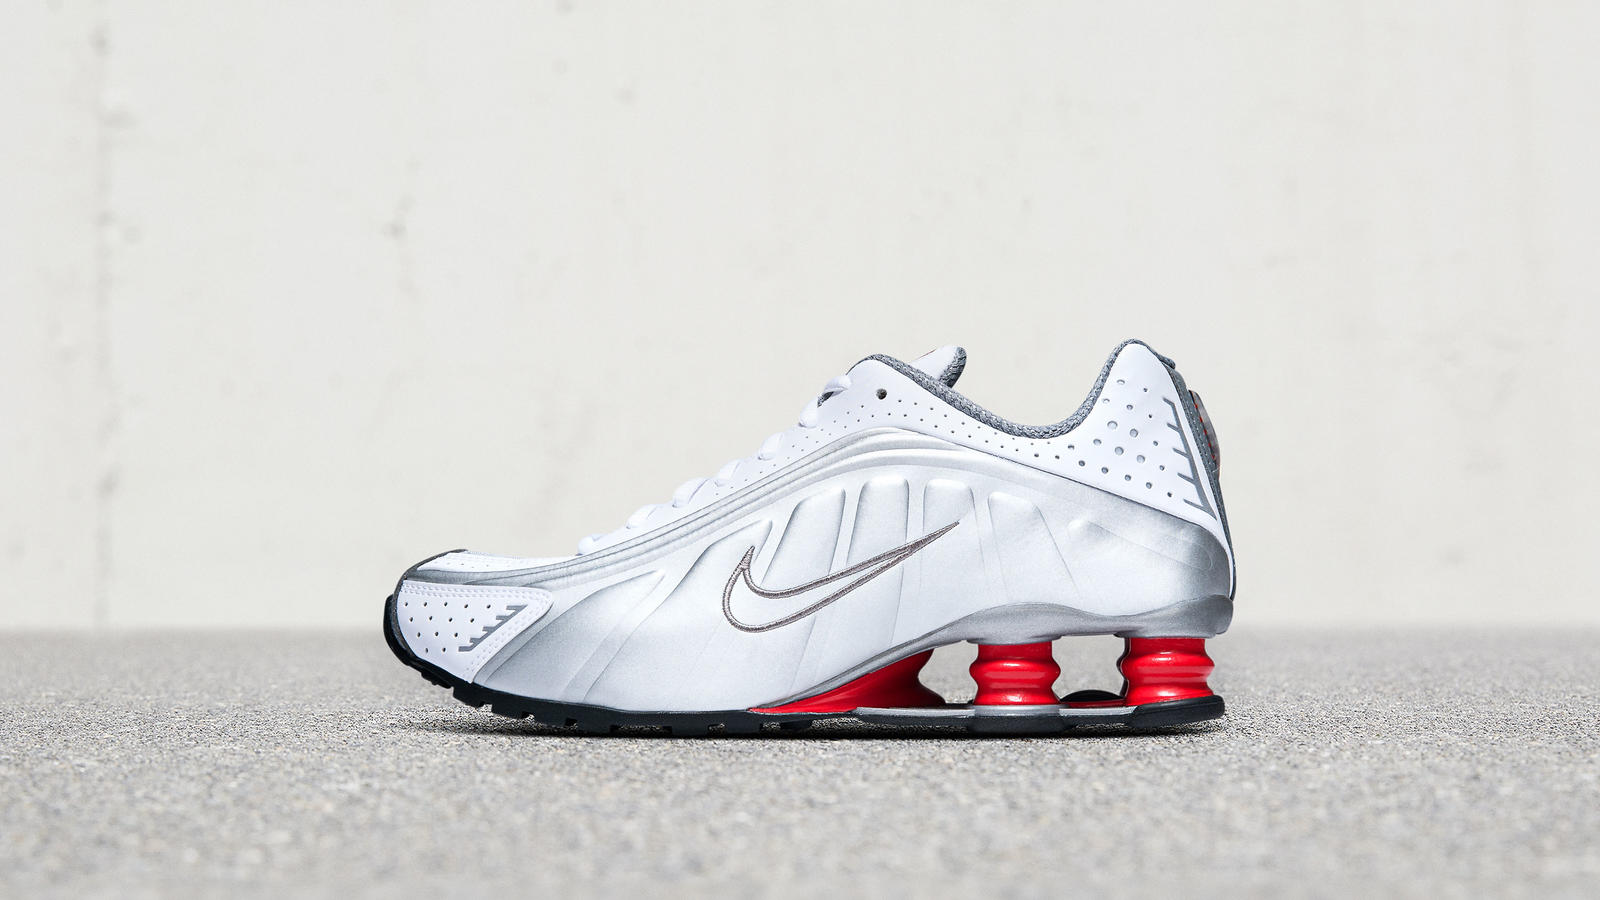 timeless design c05d6 d1dfe How to Get the Nike Shox R4 0